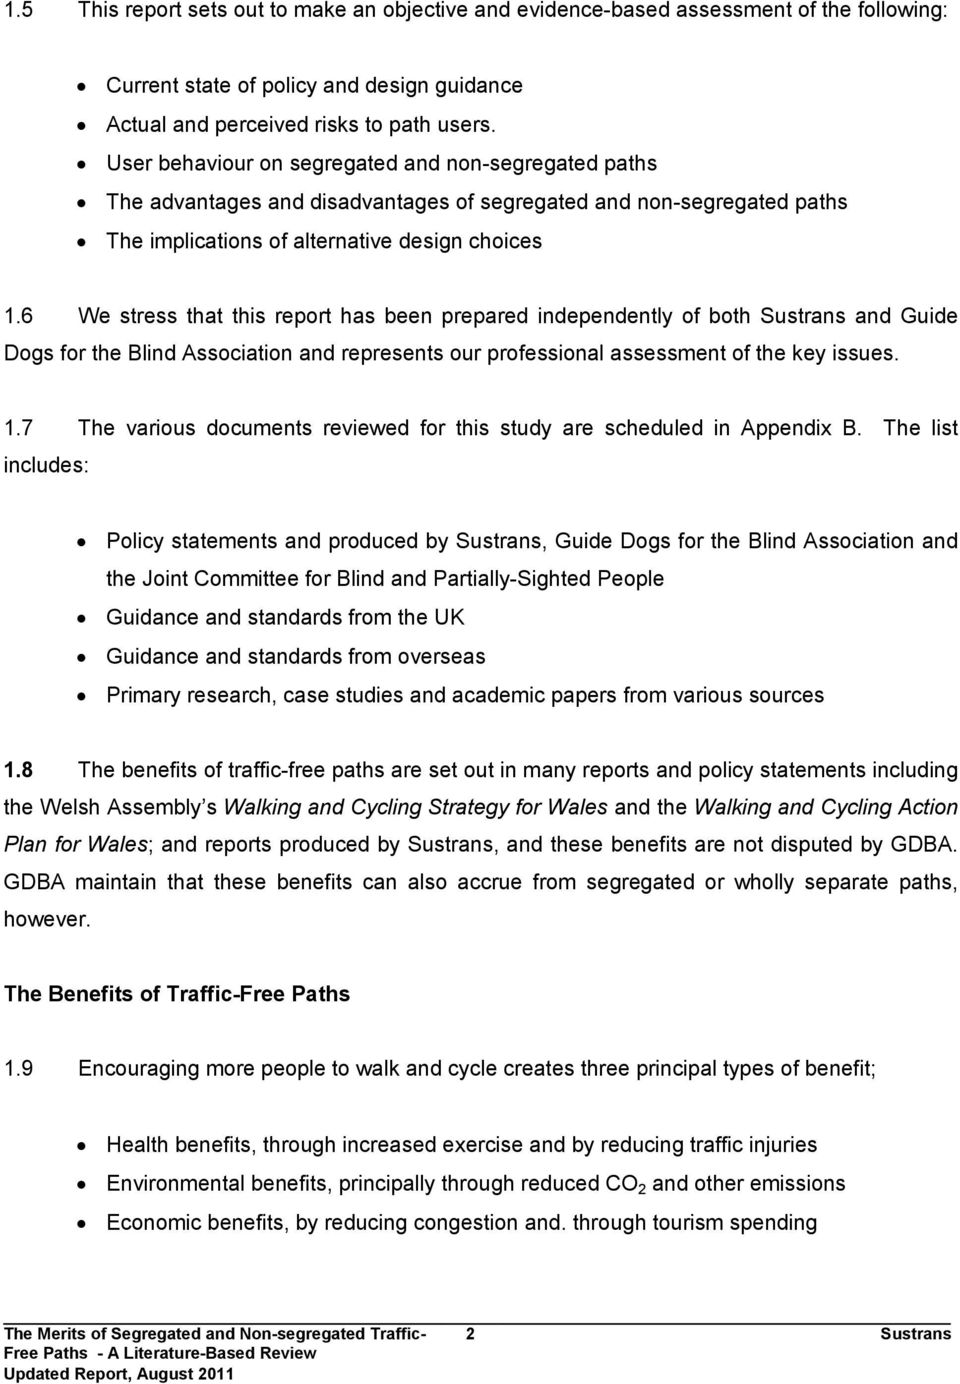 6 We stress that this report has been prepared independently of both Sustrans and Guide Dogs for the Blind Association and represents our professional assessment of the key issues. 1.